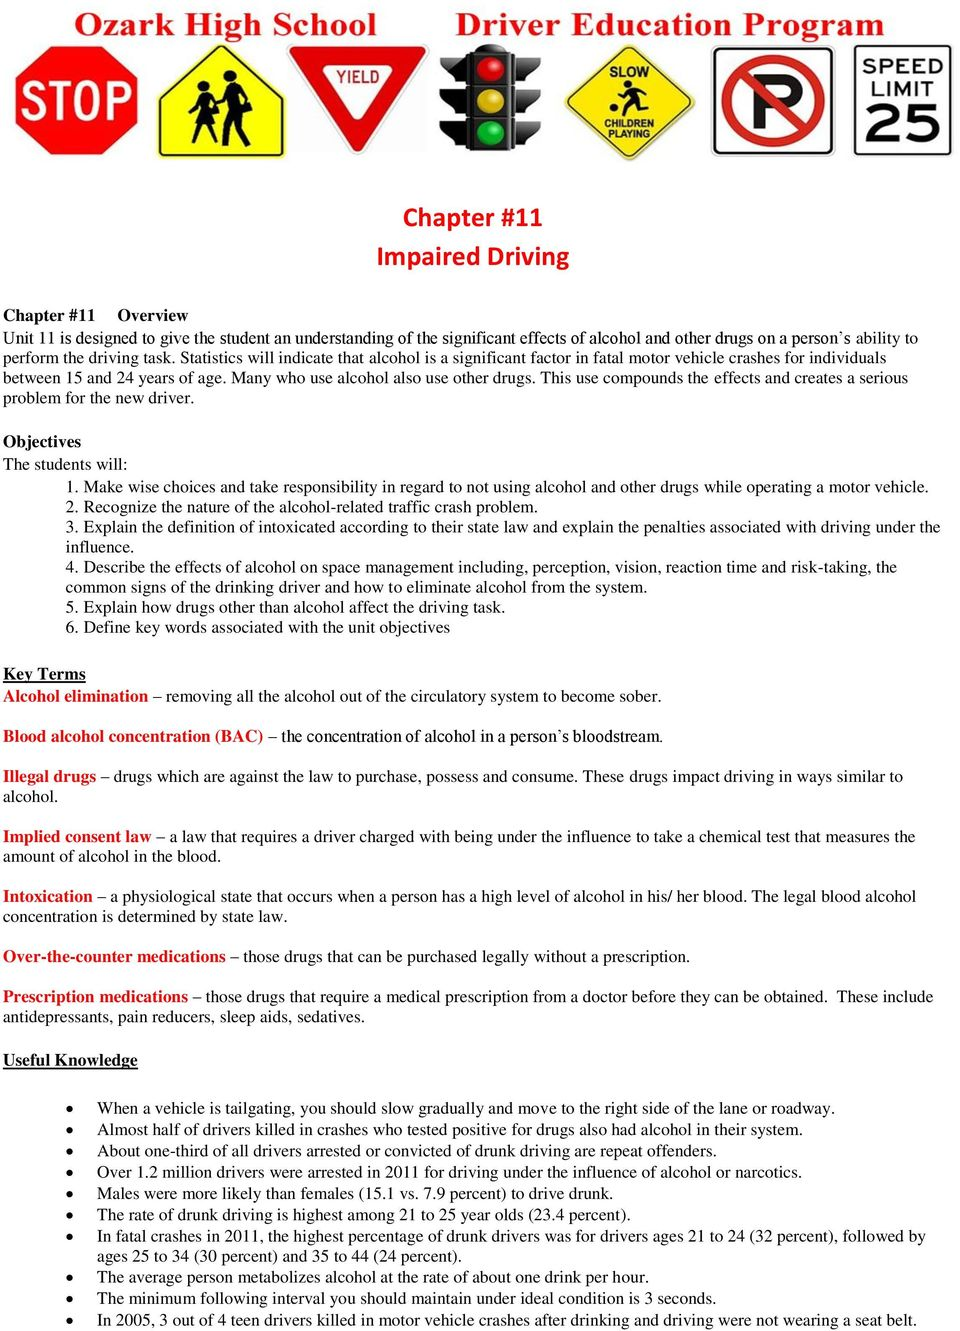 drivers ed 02.02 assignment answer key